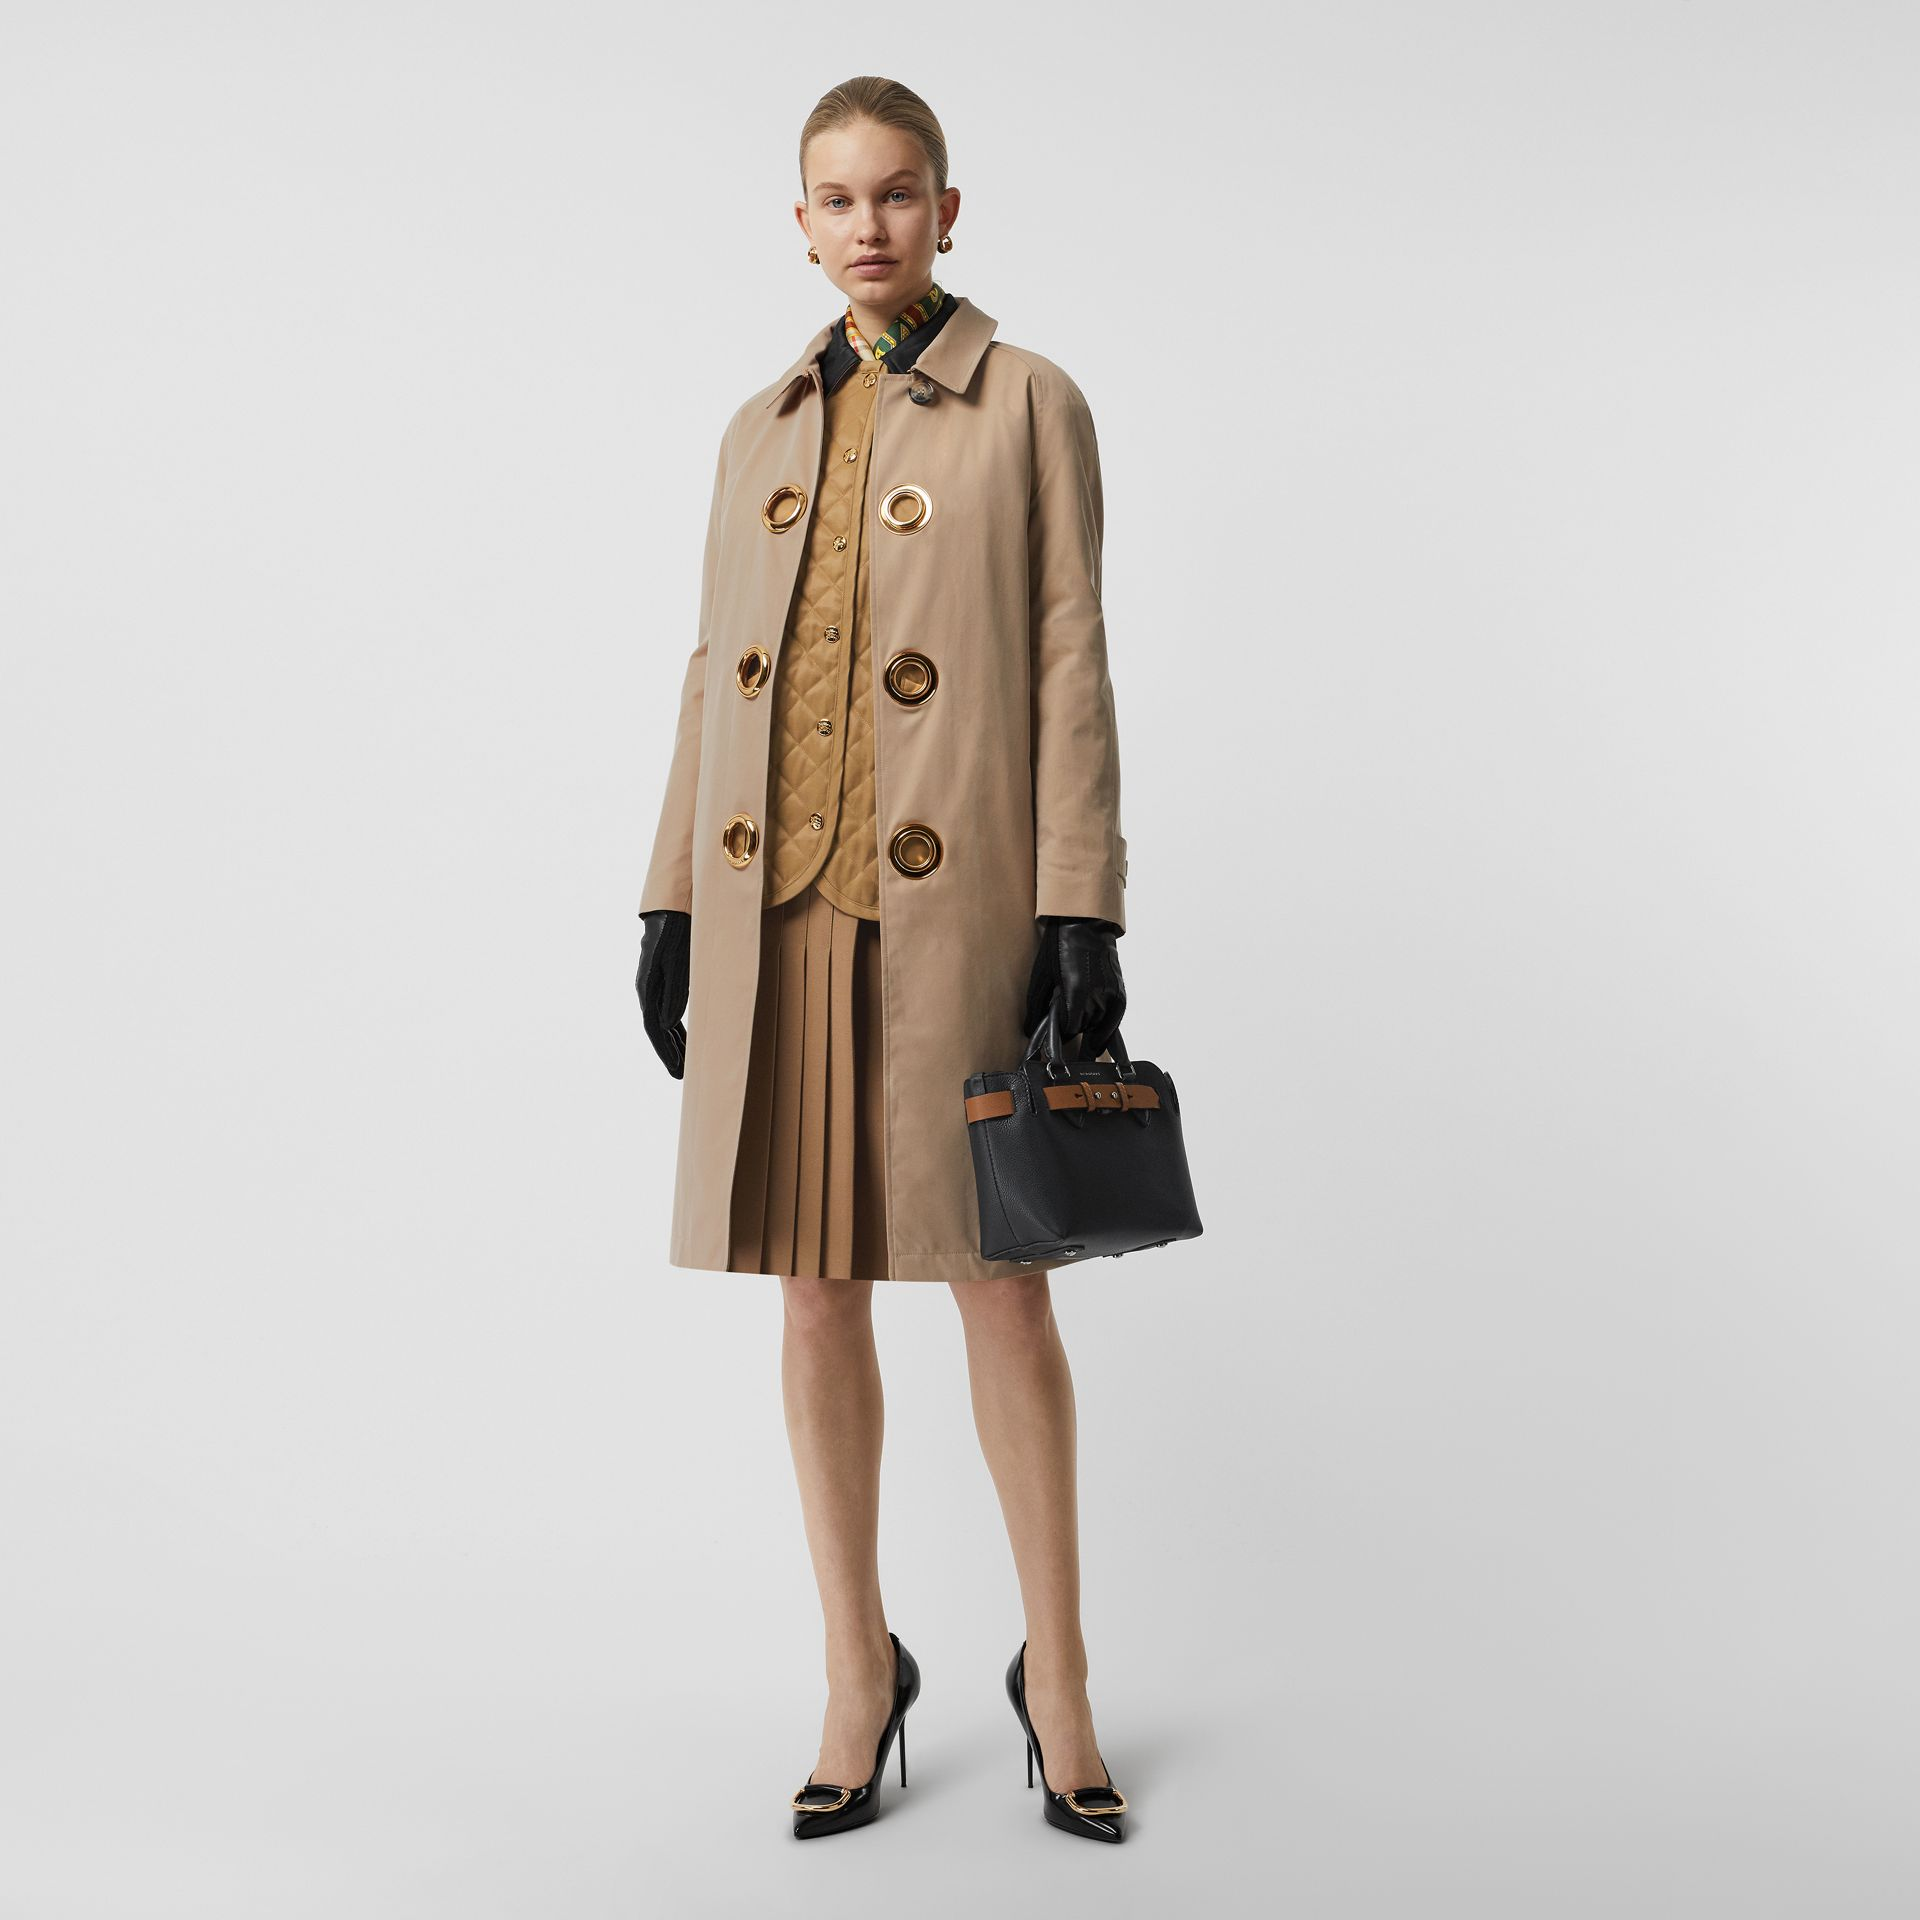 Grommet Detail Cotton Gabardine Car Coat in Honey - Women | Burberry - gallery image 0